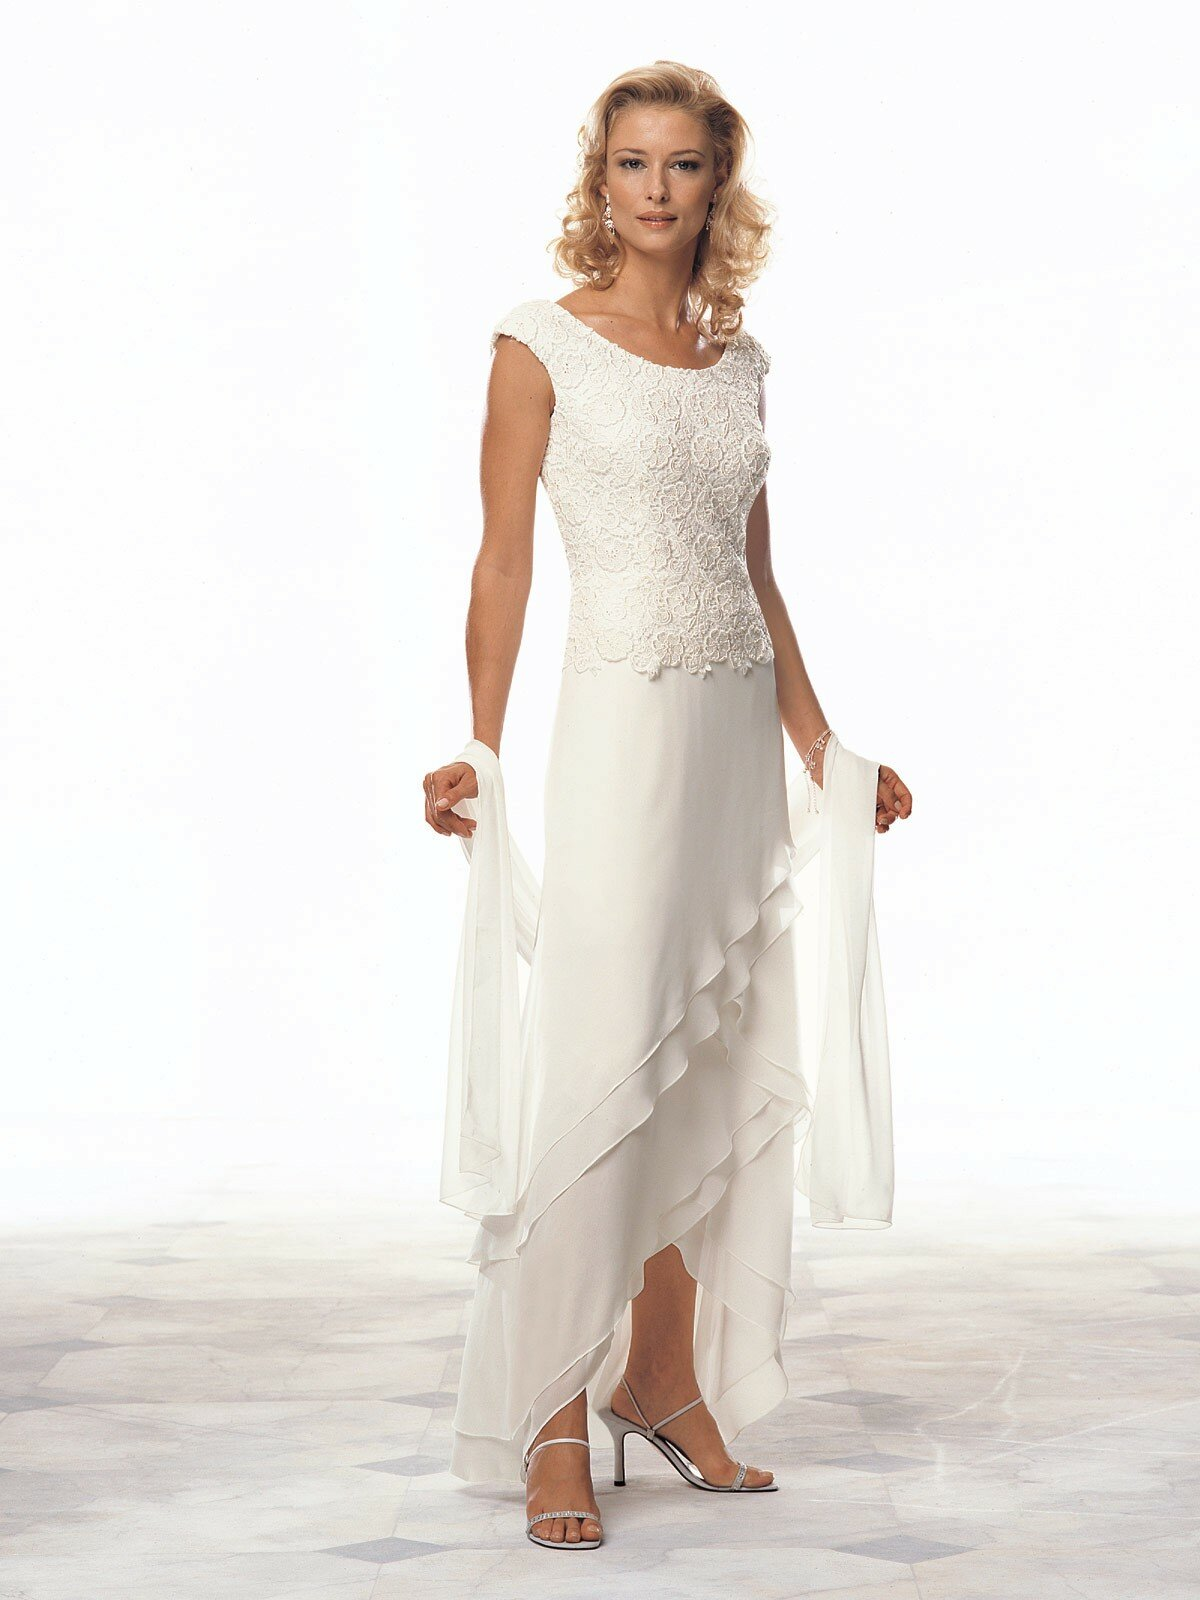 Wedding dresses for the mother of the groom Photo - 1